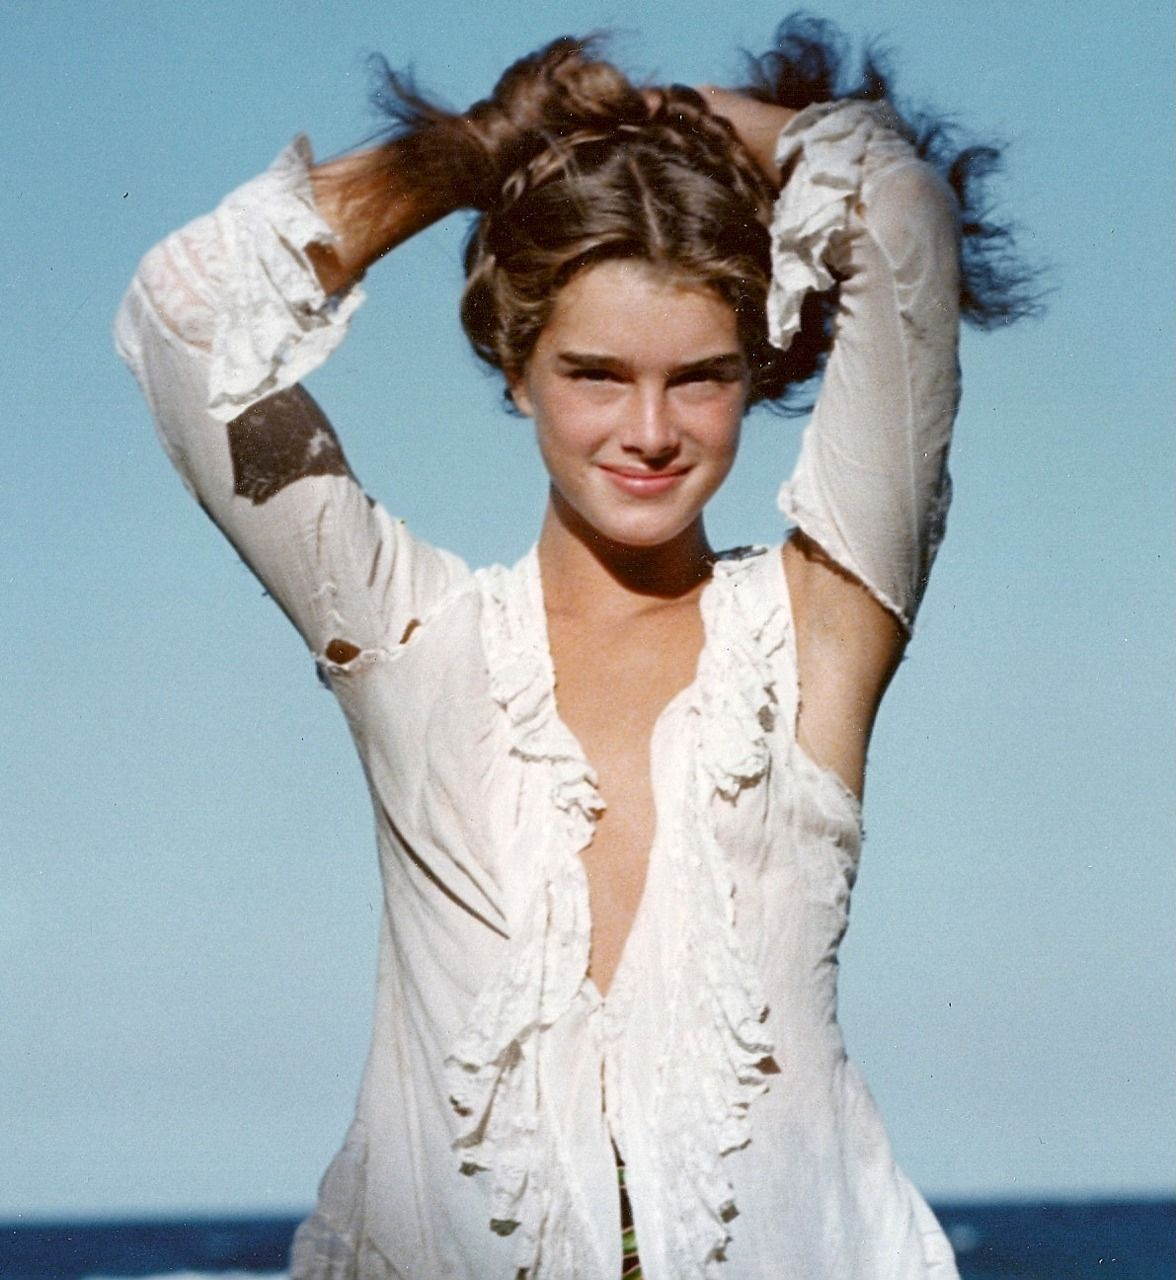 Poster Girls!: Photo in 2020 | Brooke shields, Brooke ...